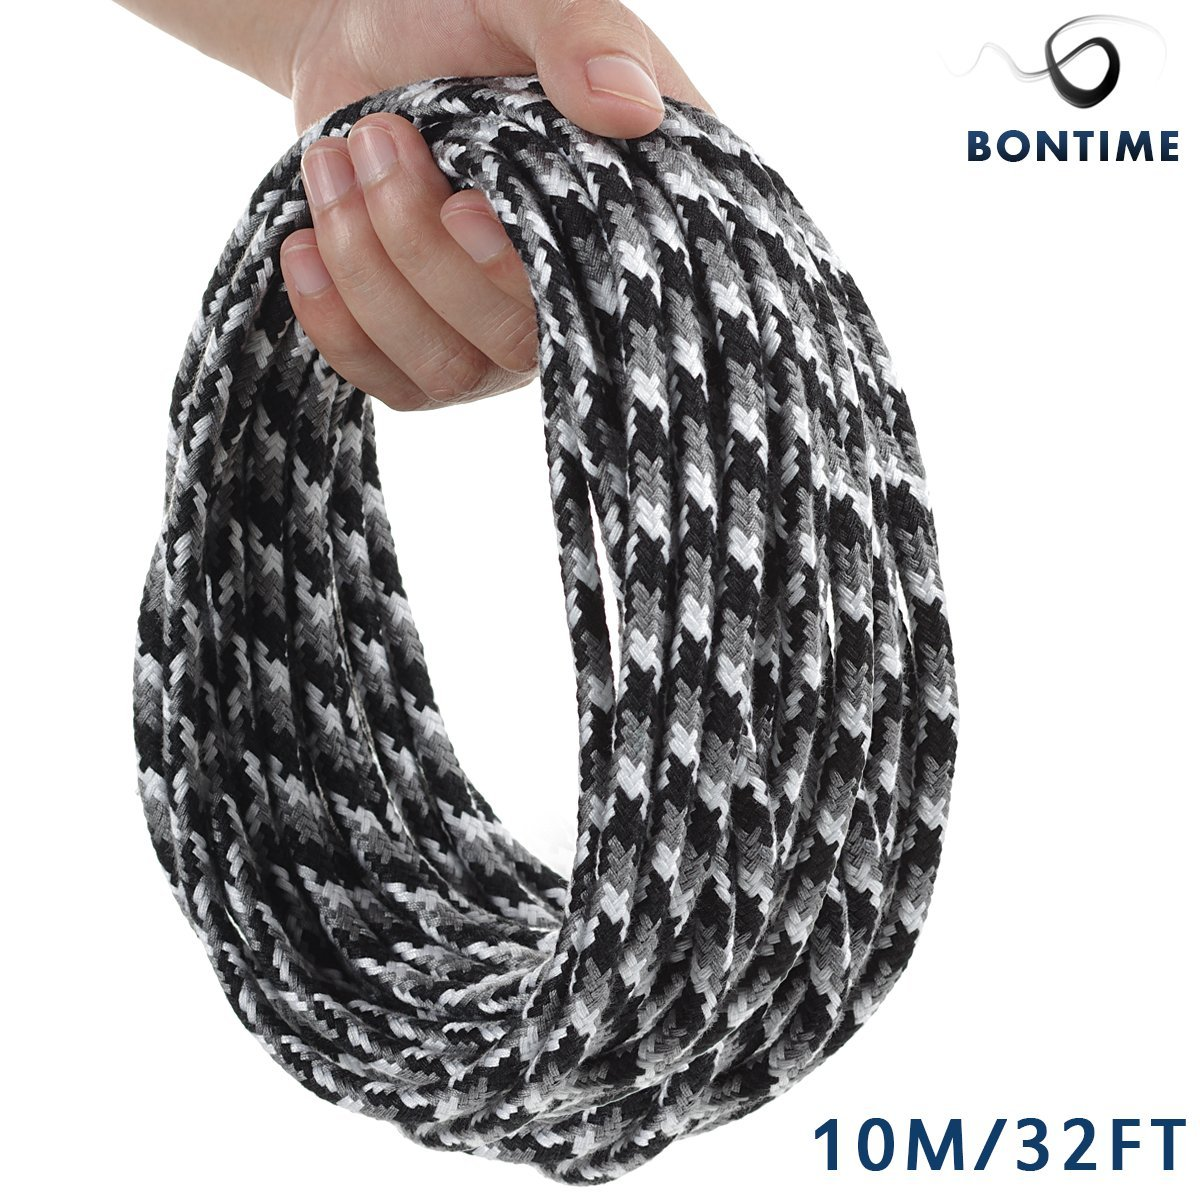 BONTIME All-Purpose Soft Cotton Rope - 32 Feet Length,1/3-Inch Diameter(Black & Grey & White,Pack of 3) by BONTIME (Image #3)